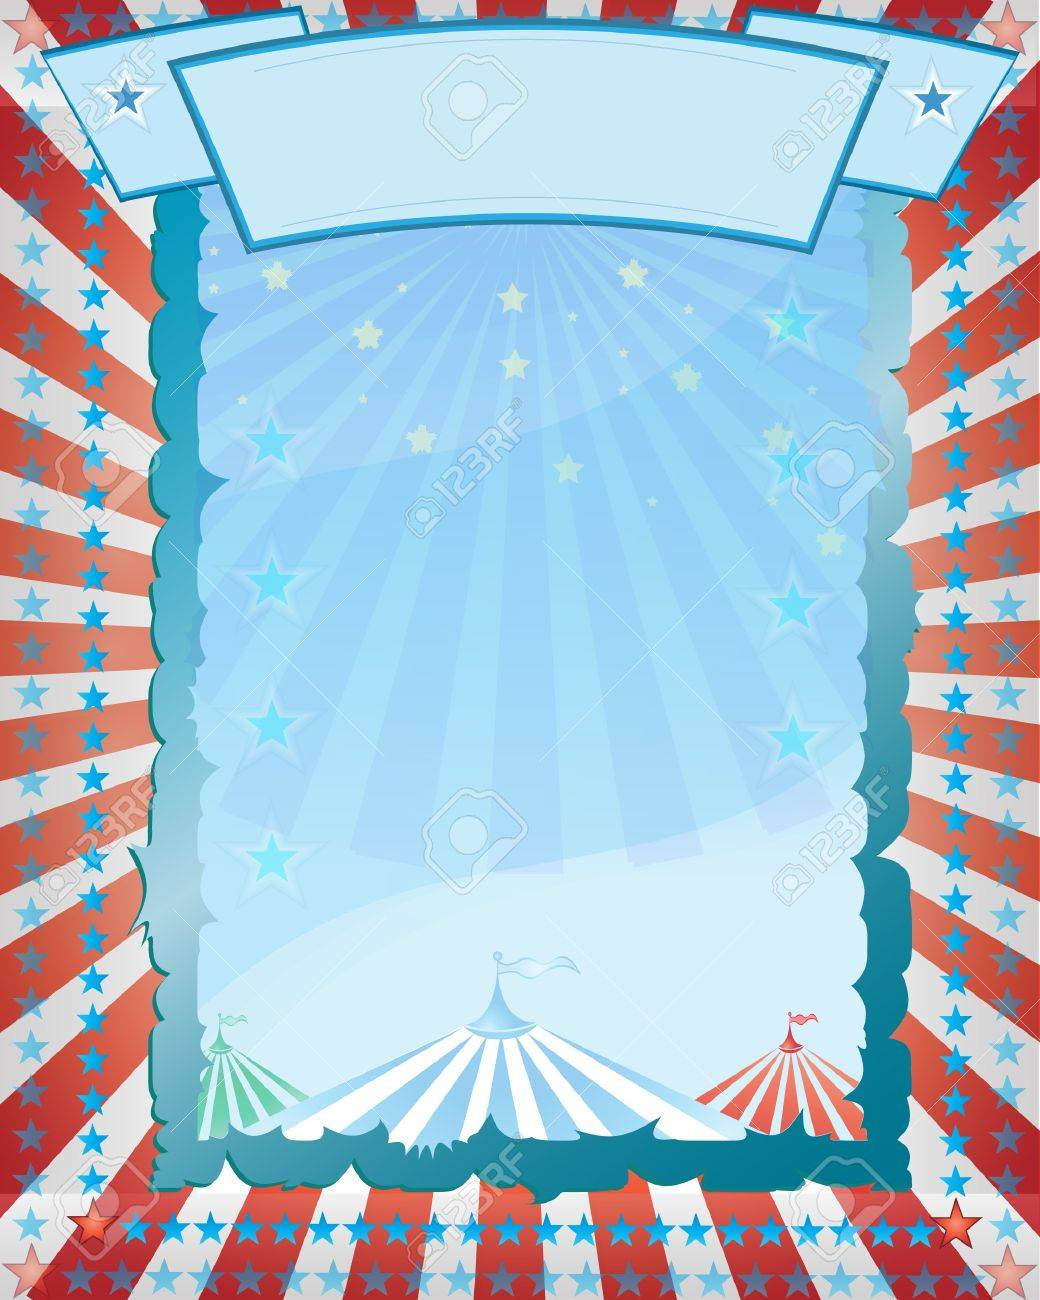 Stock Vector Illustration: A retro circus. red background for a poster - 9557911